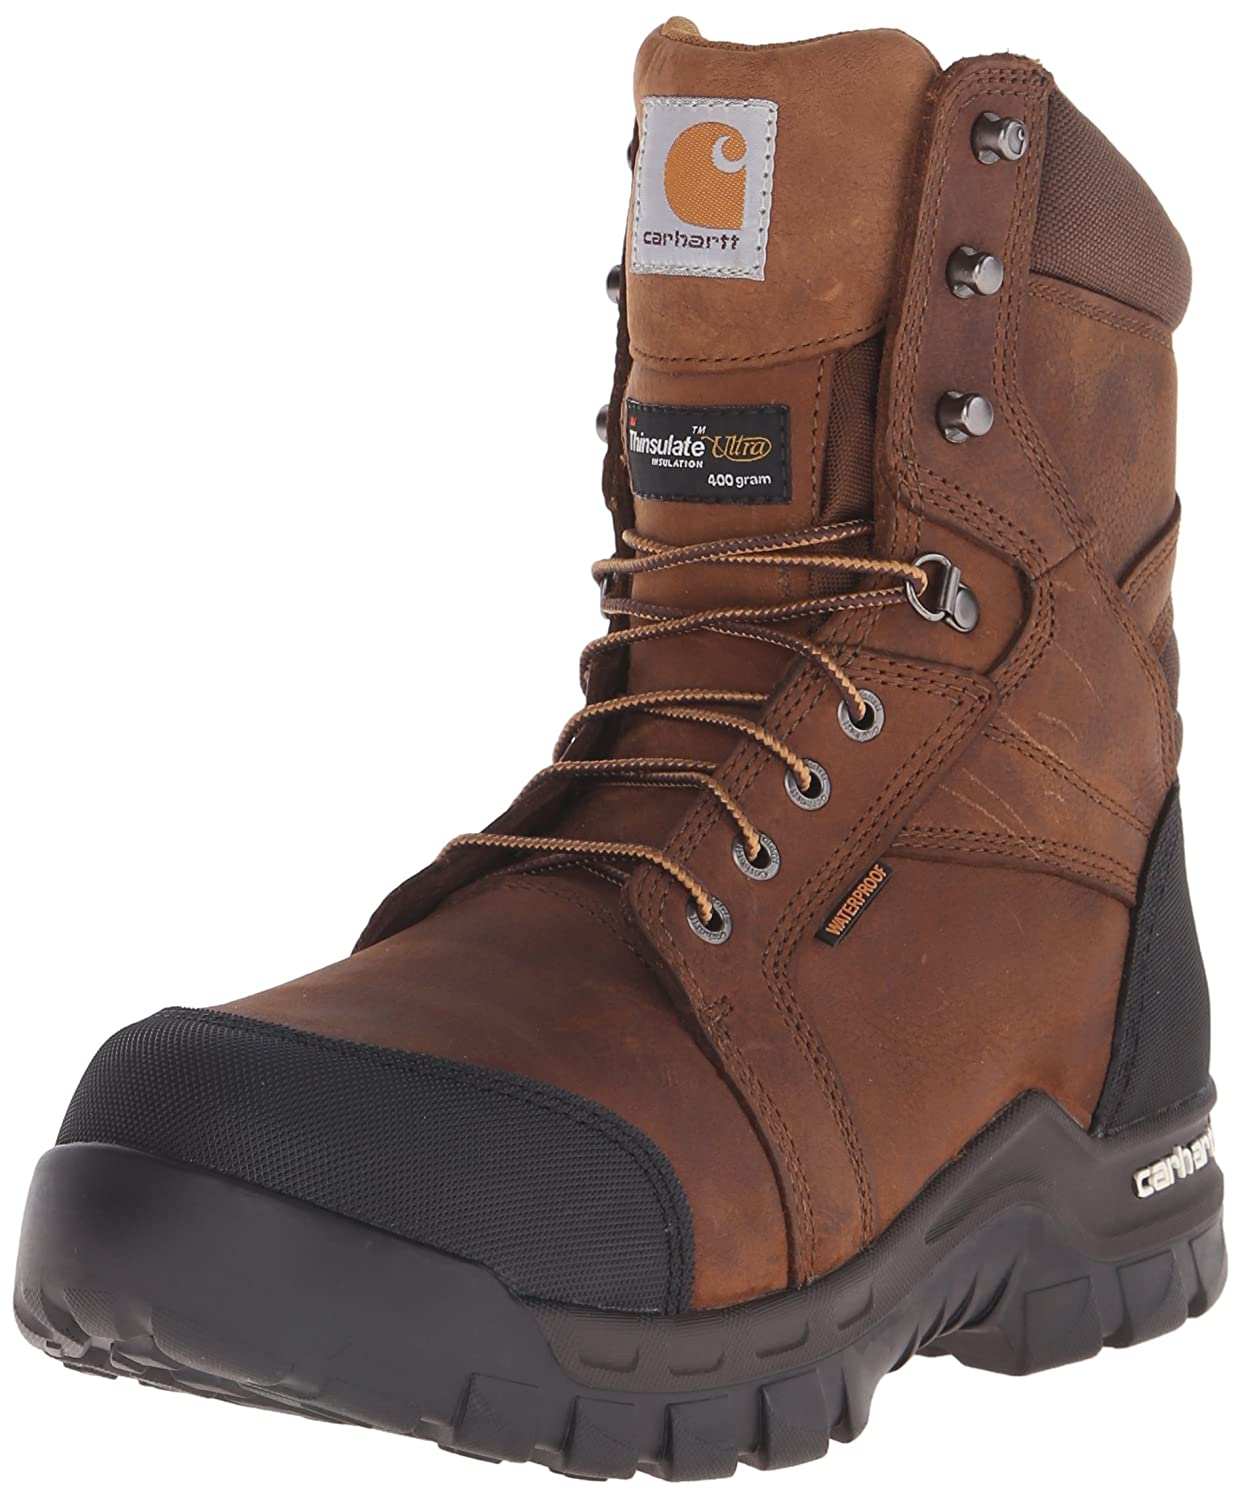 03b5c0a2c3f Carhartt Men's Ruggedflex Safety Toe Work Boot